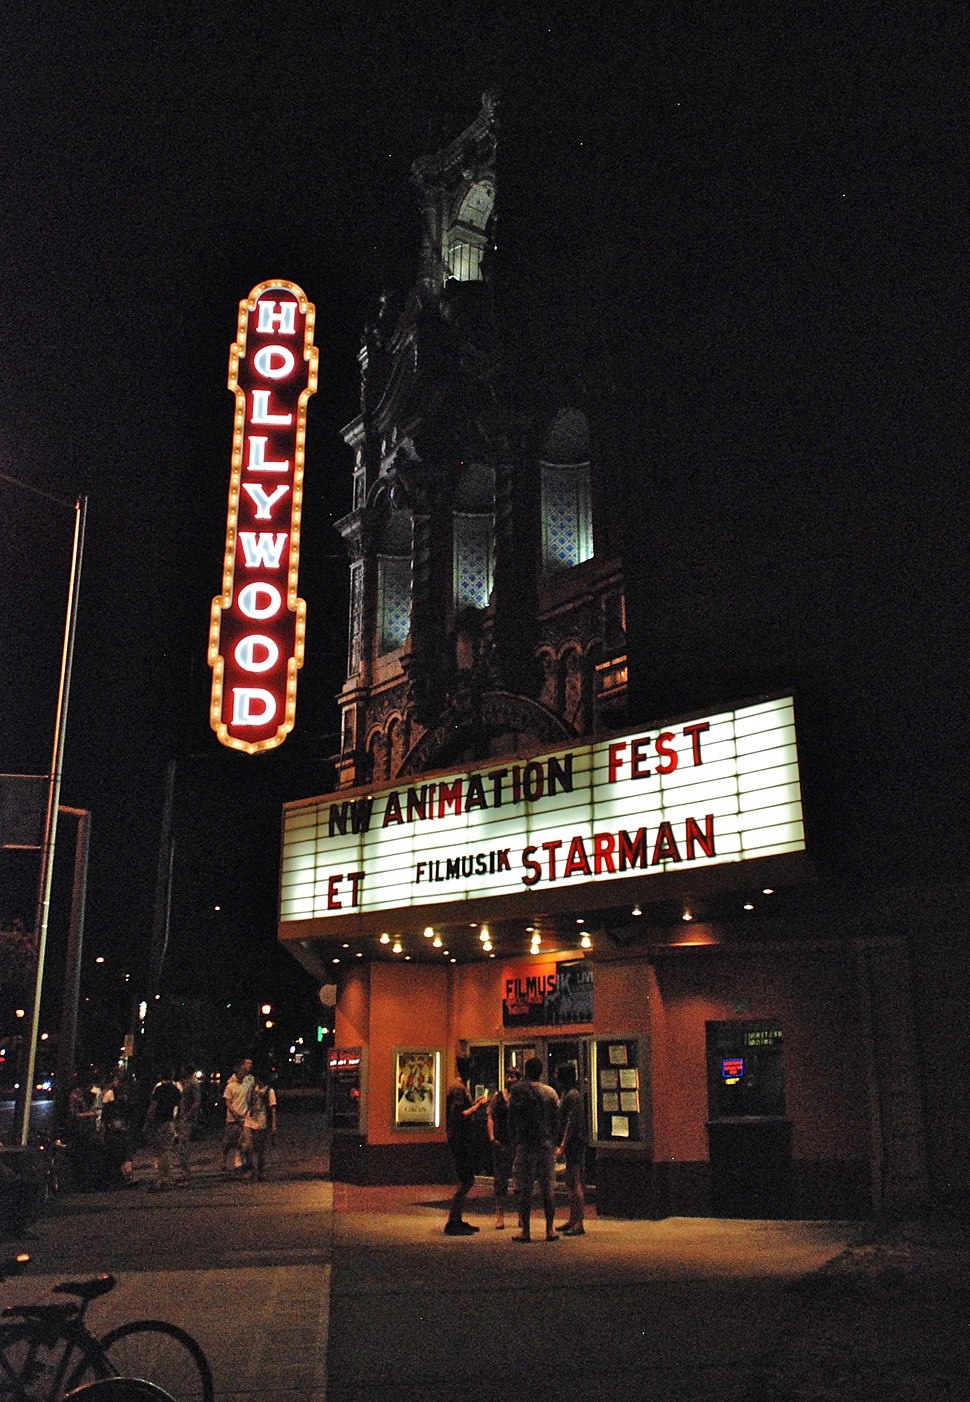 Hollywood Theatre (Portland, Oregon) at night, 2011